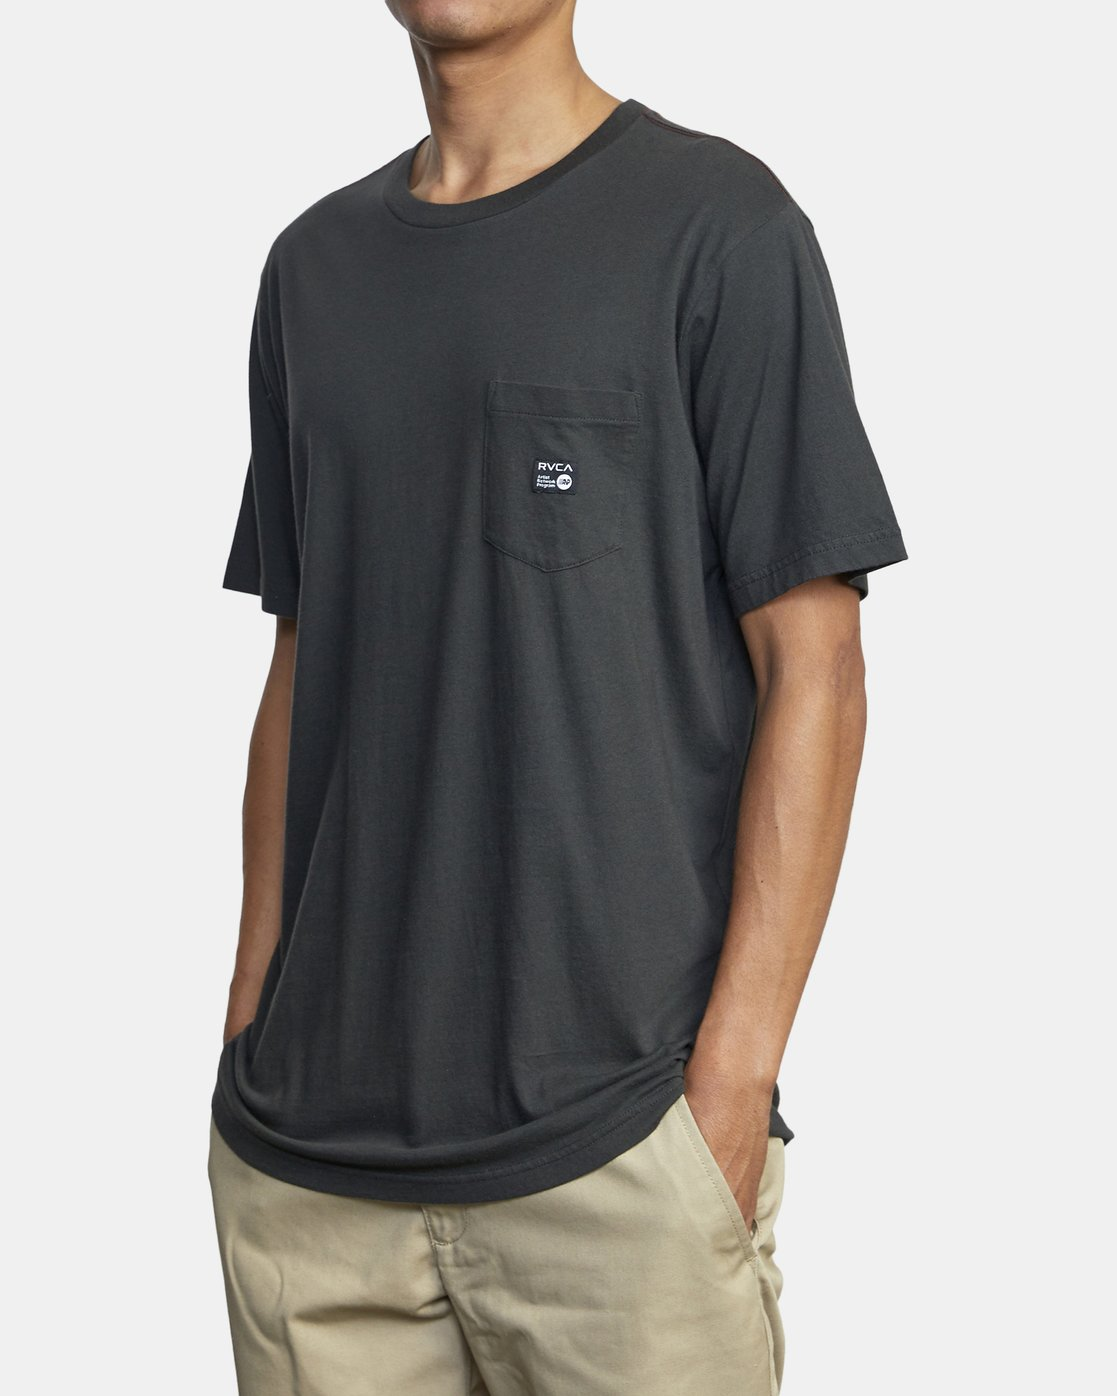 2 ANP POCKET SHORT SLEEVE TEE Black M4362RAN RVCA